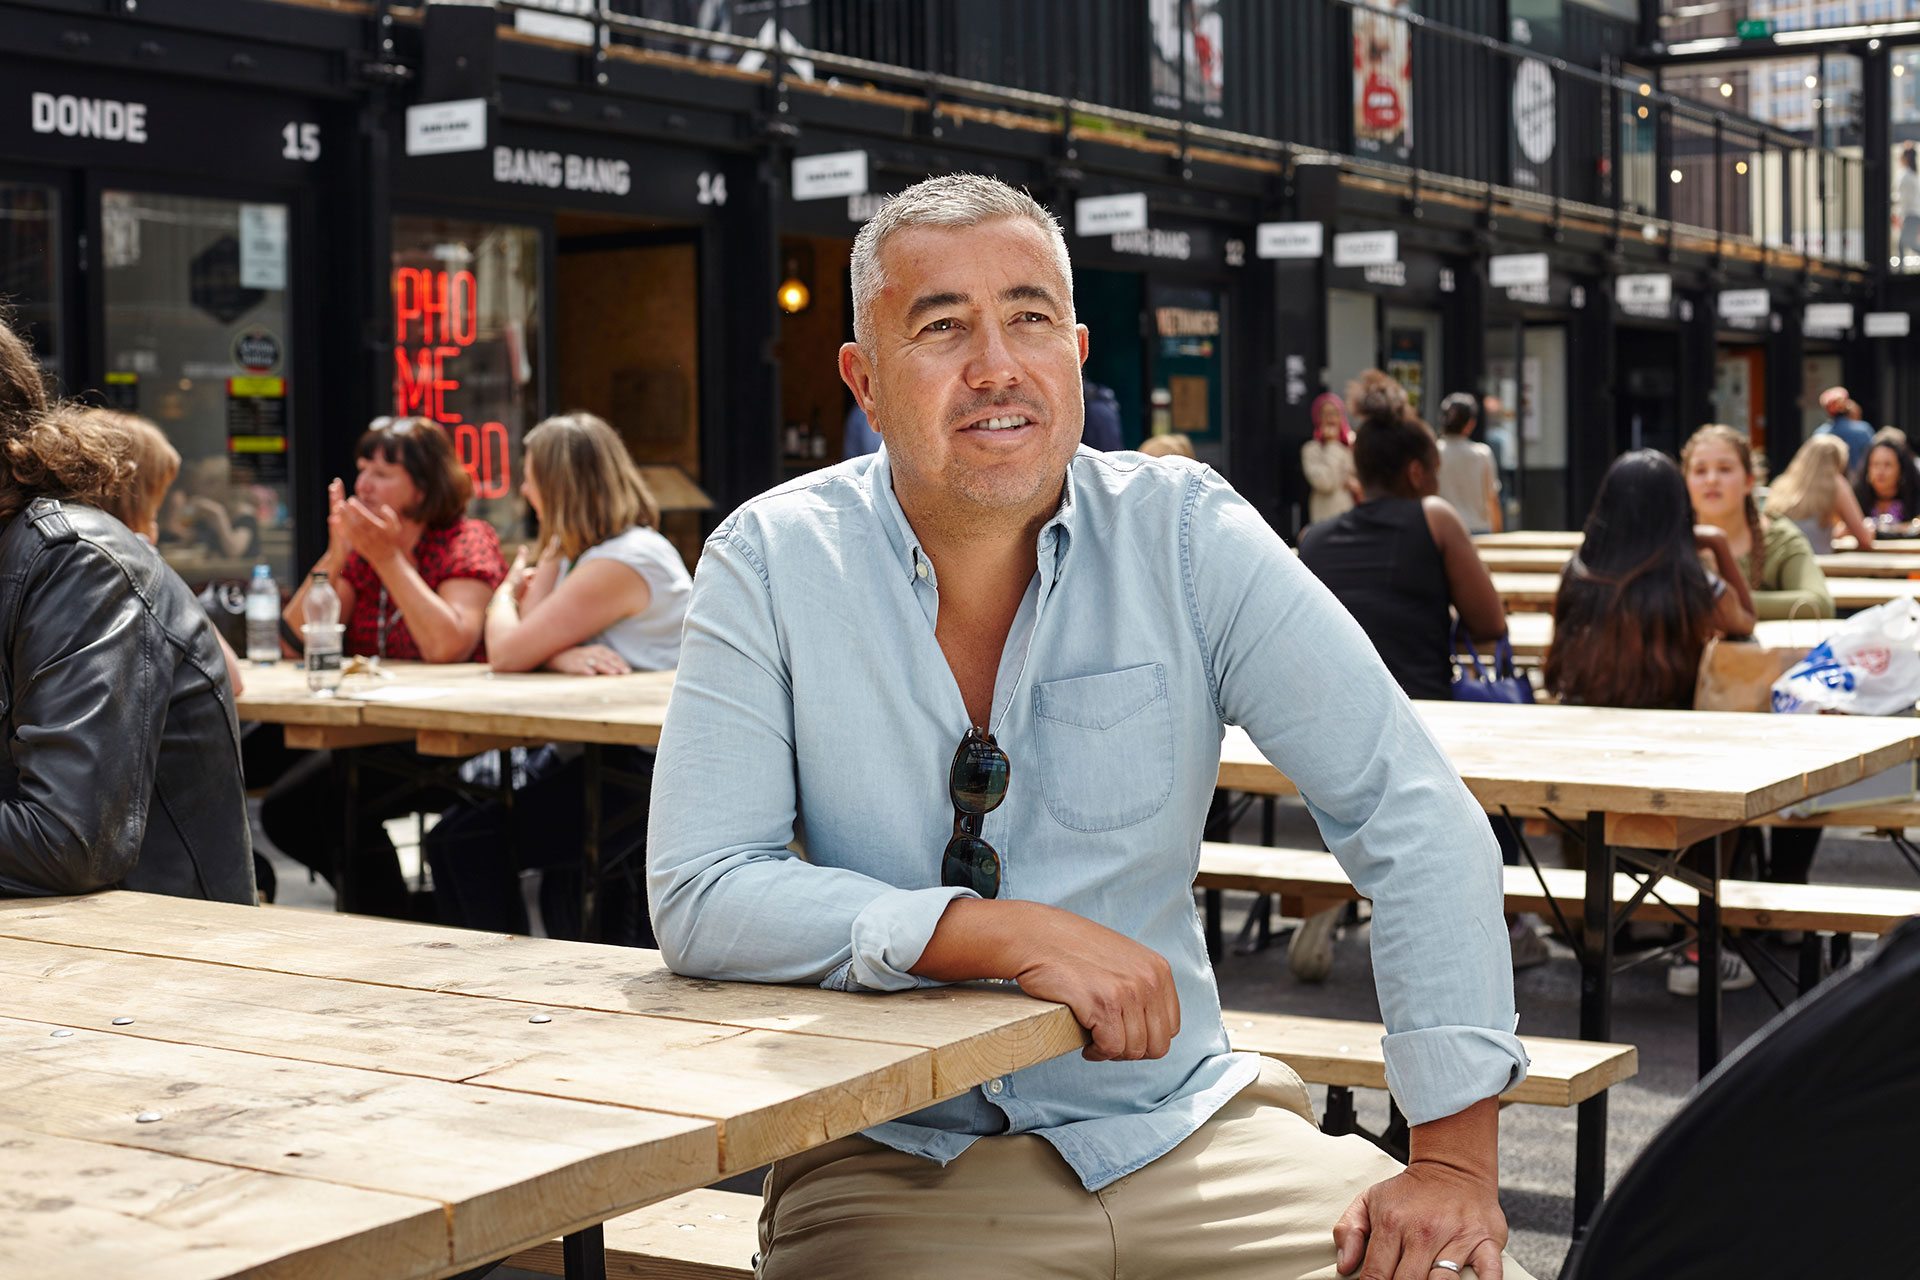 The founder of Boxpark on making a modern market out of a shed, selling Boxfresh, and hiring a Michelin star chef